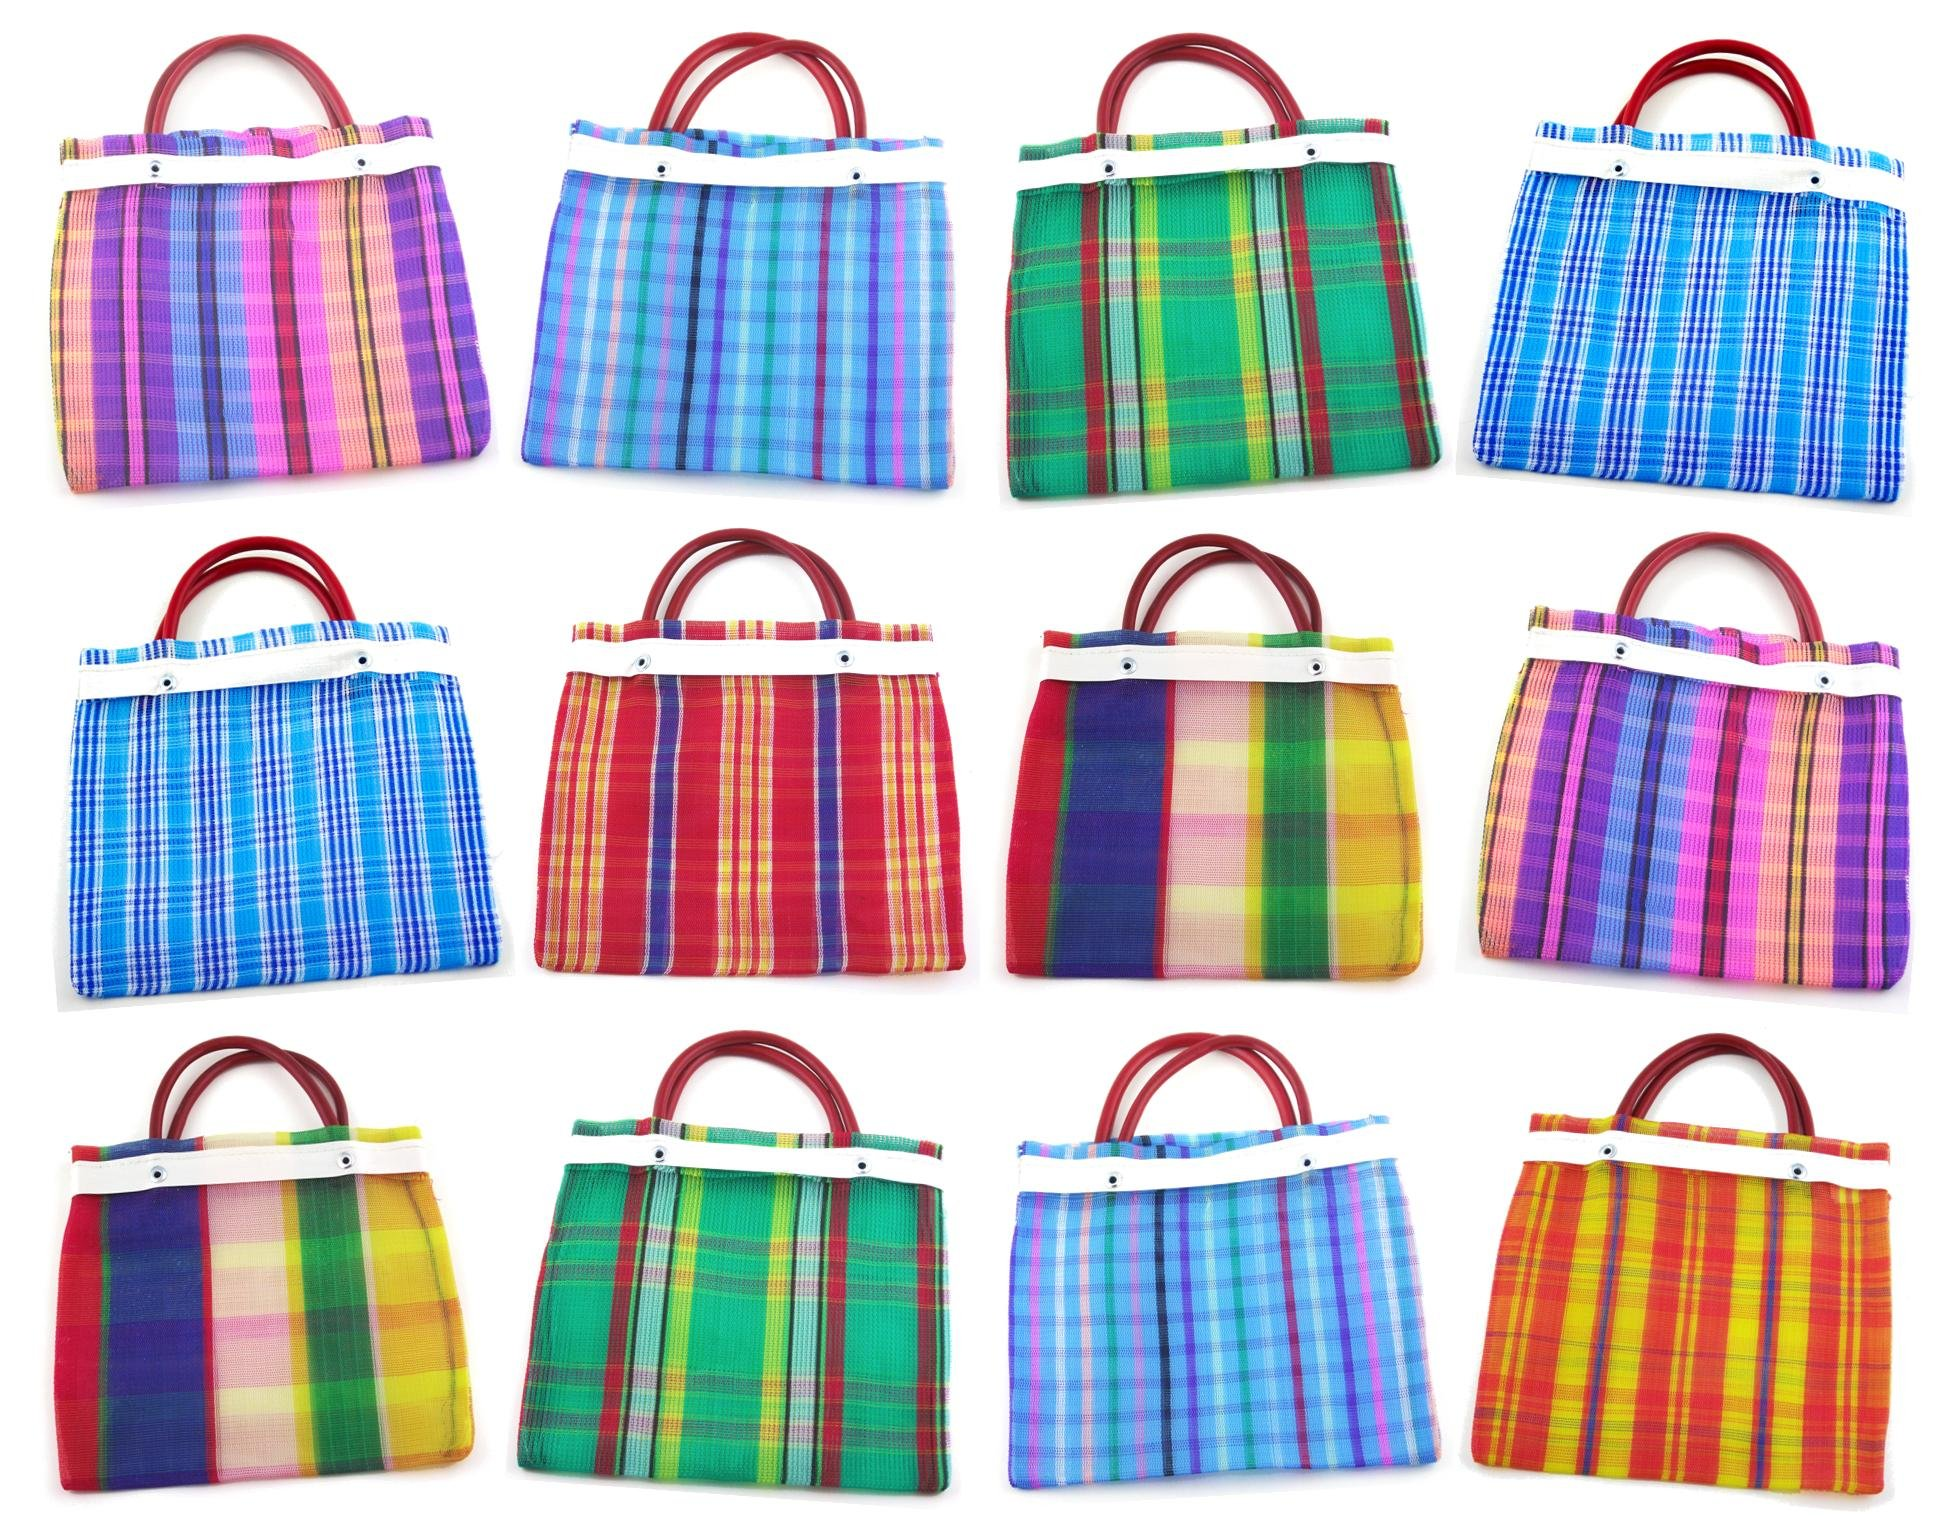 Small Mexican Tote Mercado Bags 7.5'' by 7.5'' - Assorted Colors - Set of 36 by MoreFiesta